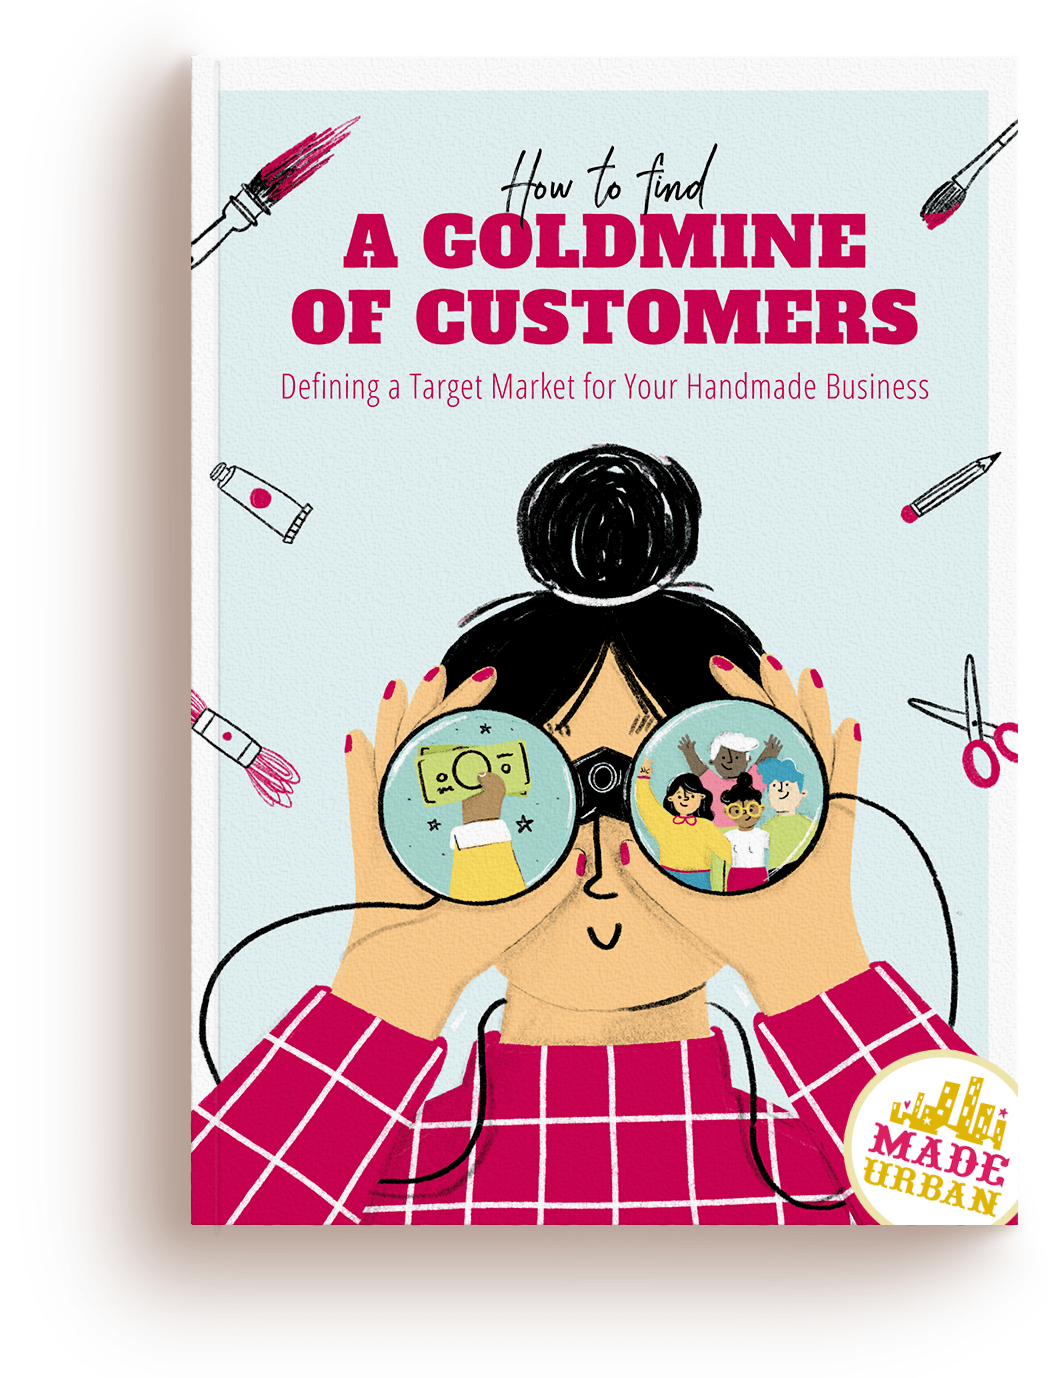 How to Find a Goldmine of Customers - Defining a Target Market for Your Handmade Business